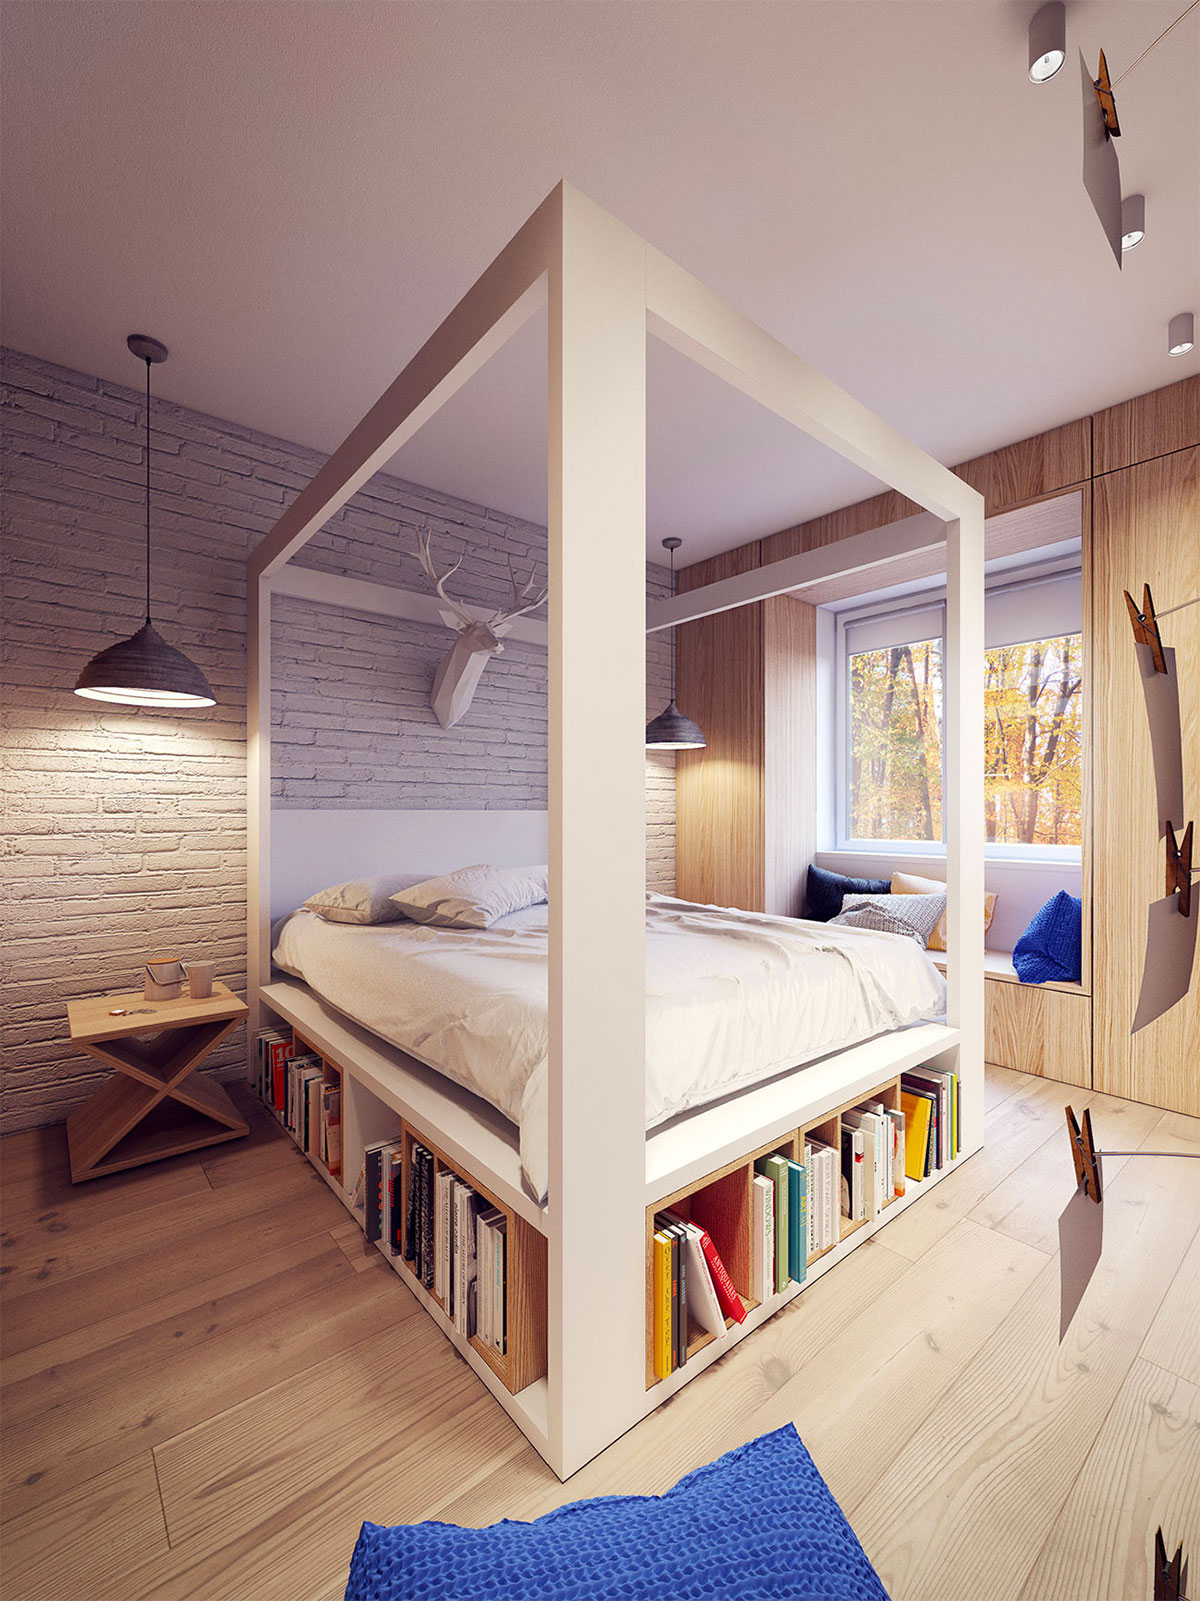 50 Awesome Bedroom Ideas: 32 Fabulous 4 Poster Beds That Make An Awesome Bedroom